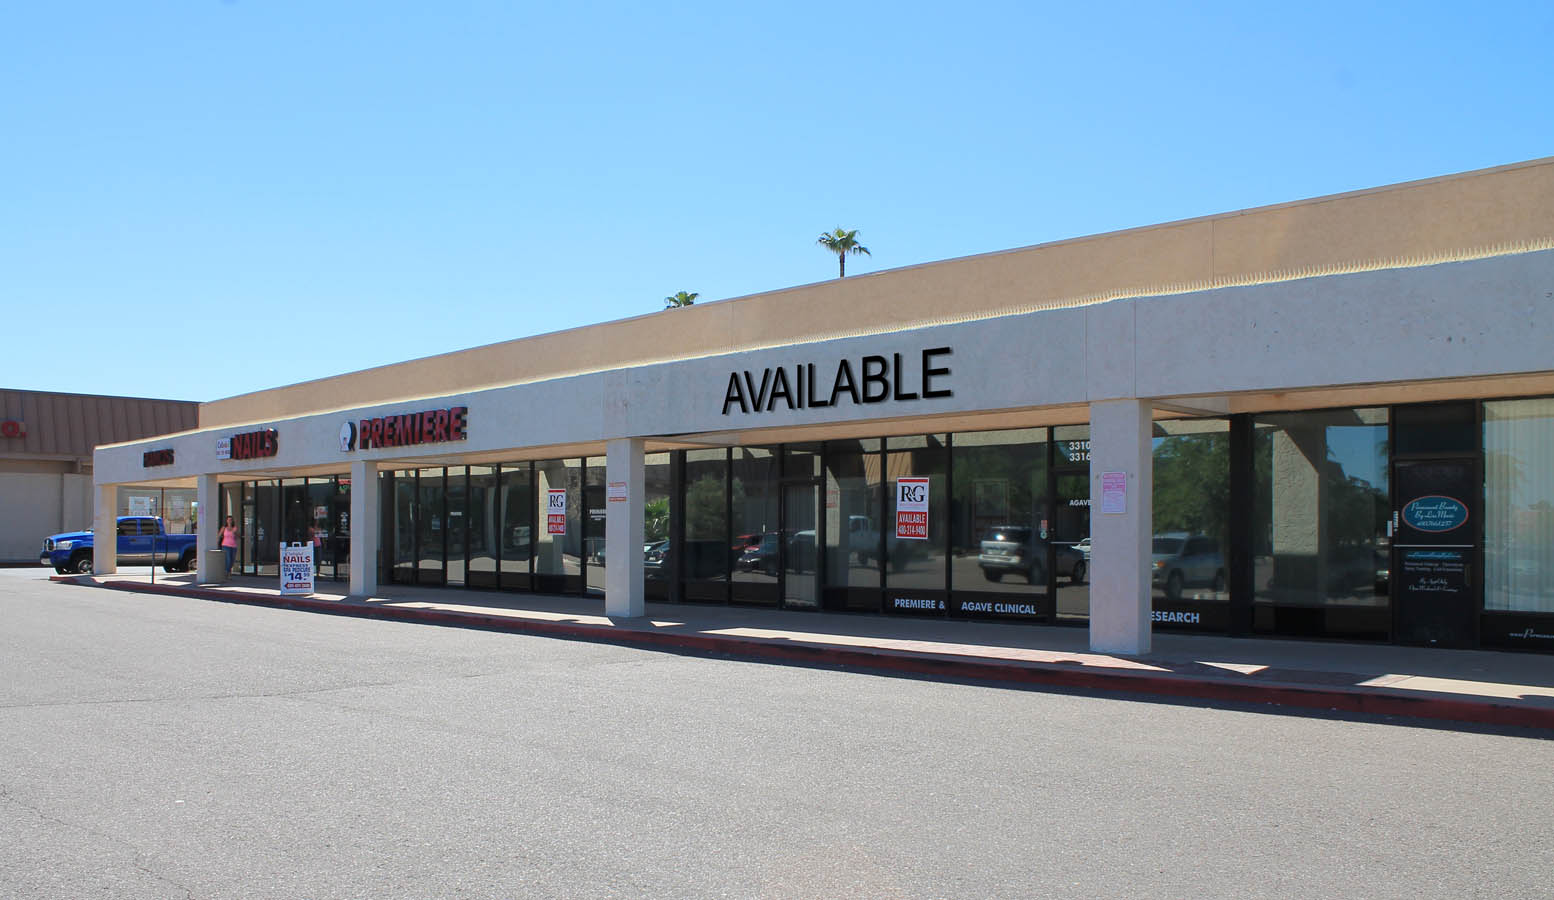 R&G commercial real estate retail leasing at 3308 S McClintock Tempe AZ